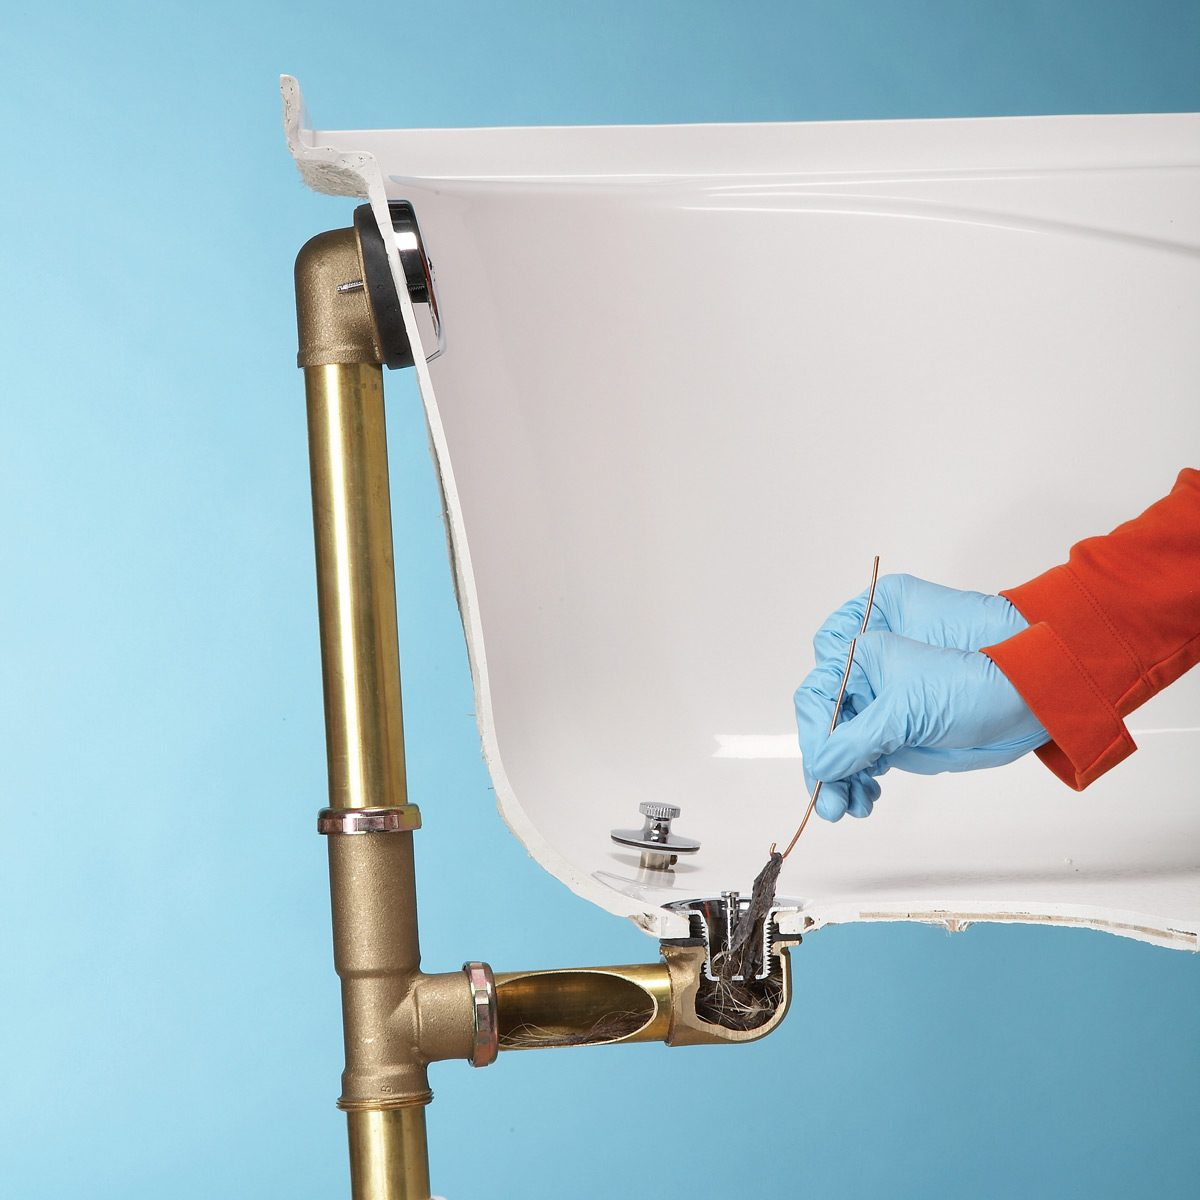 How To Unclog A Shower Drain Without Chemicals